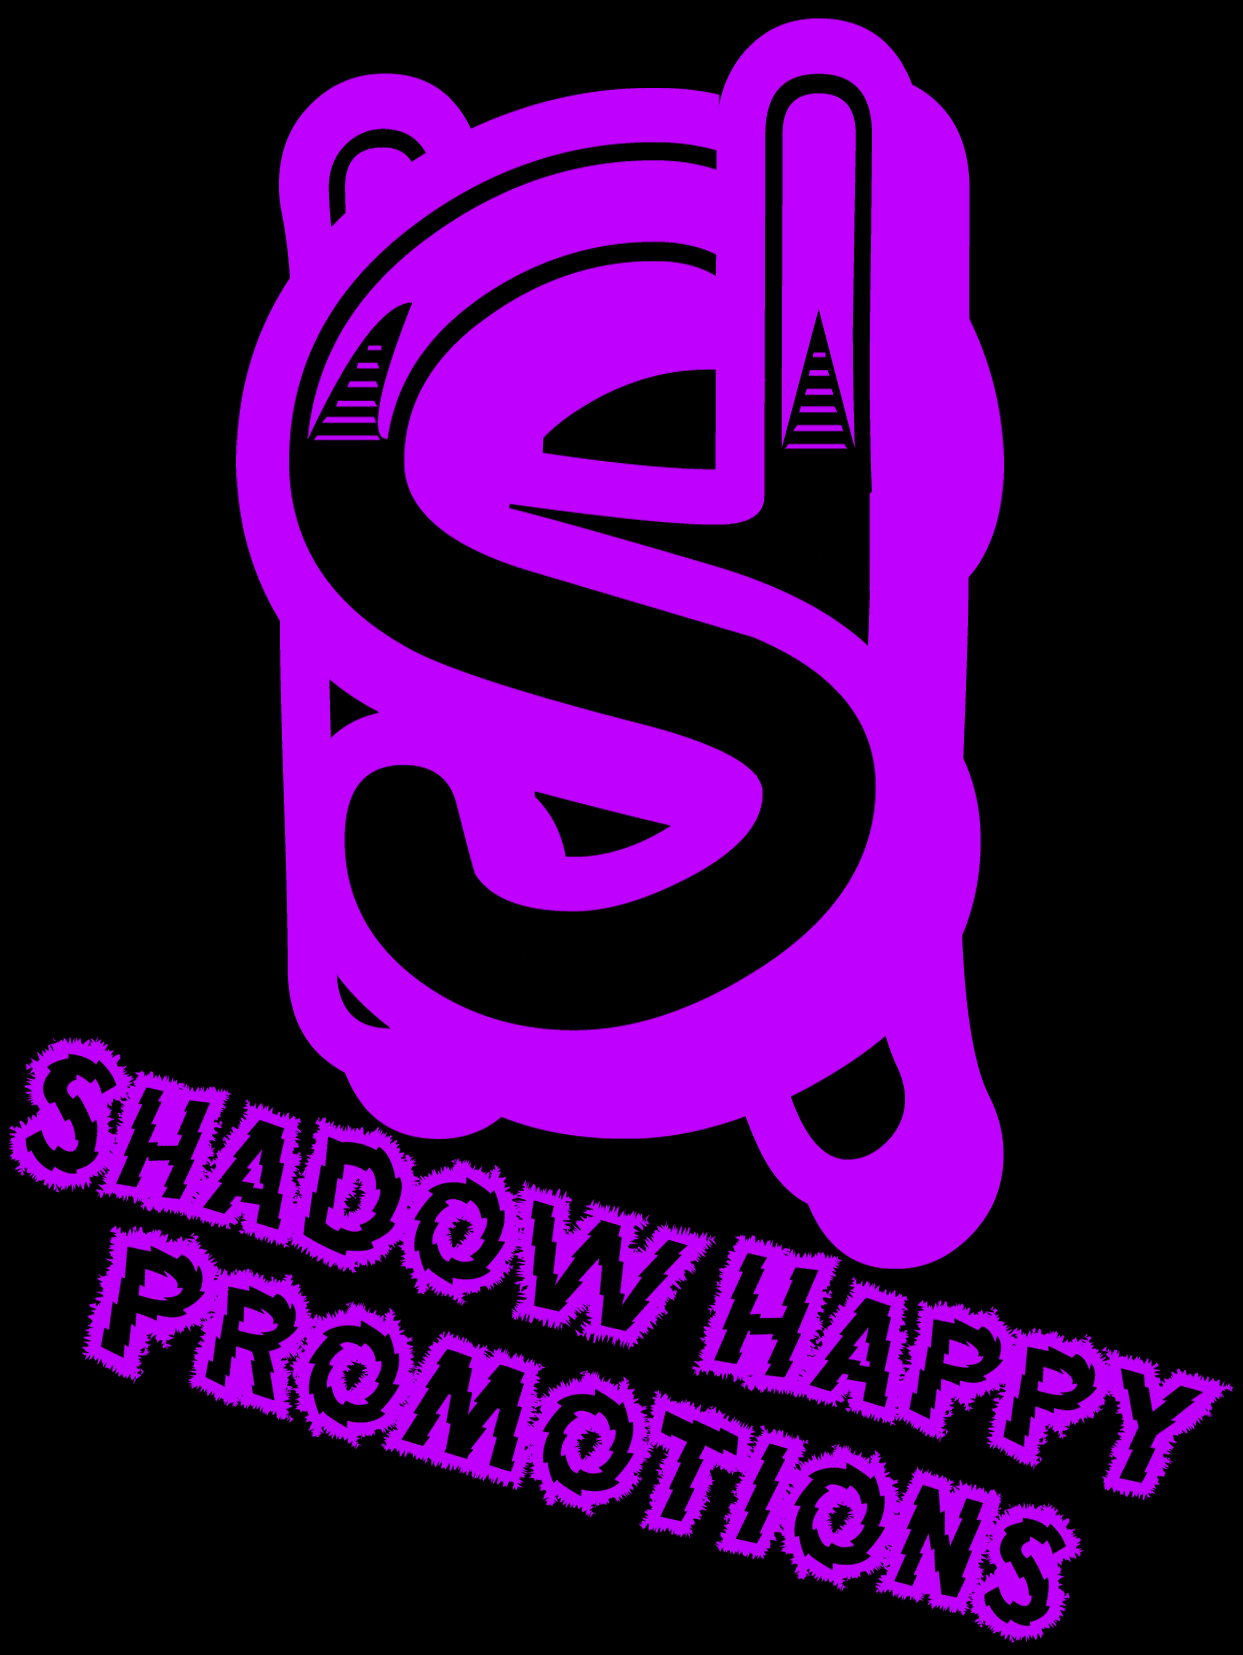 Shadow Happy Shop